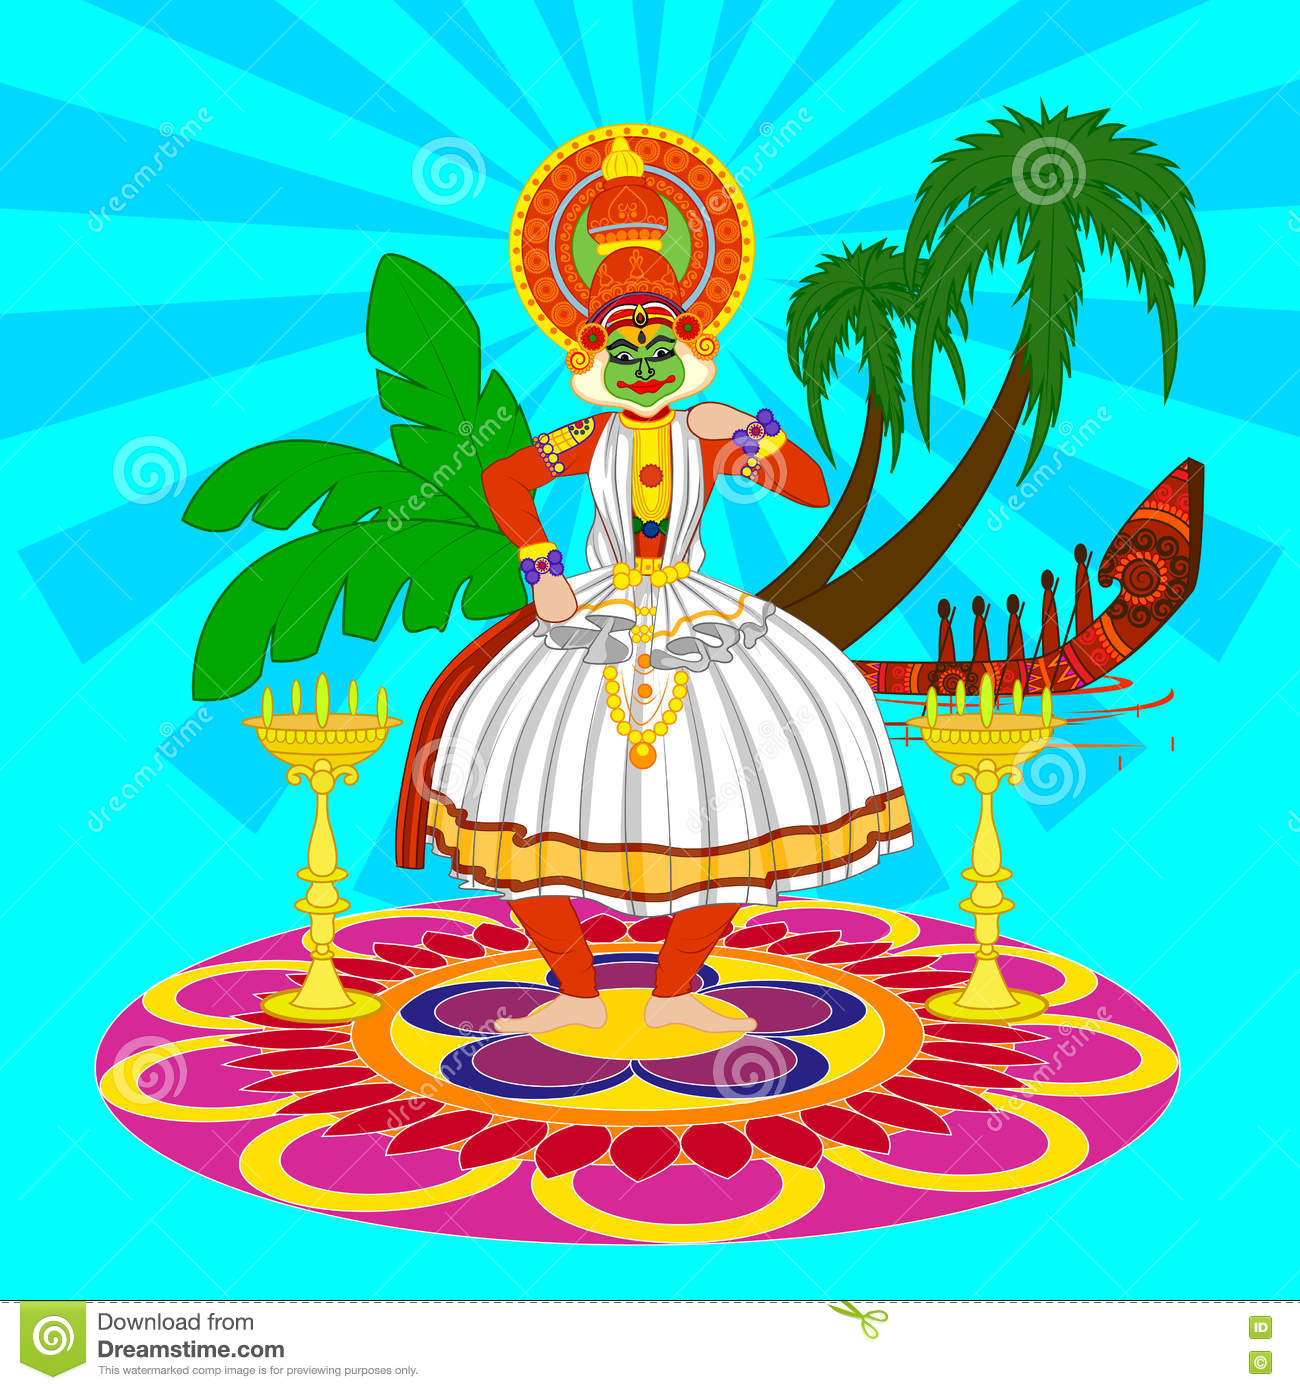 kathakali cartoons pictures illustrations - photo #47